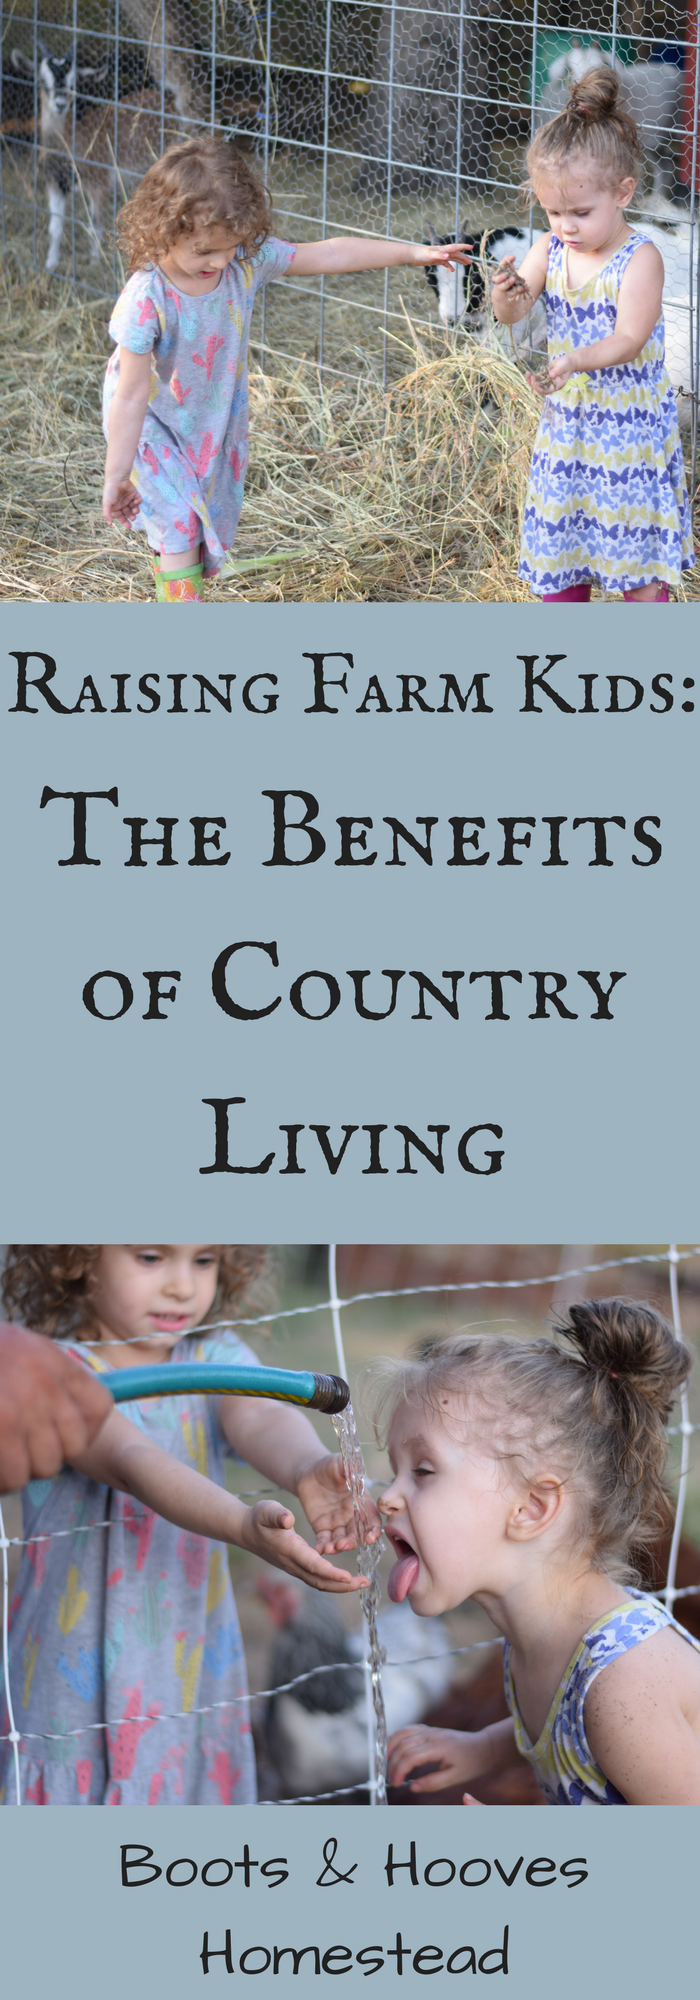 Raising Farm Kids: The Benefits of Country Living - Boots & Hooves Homestead